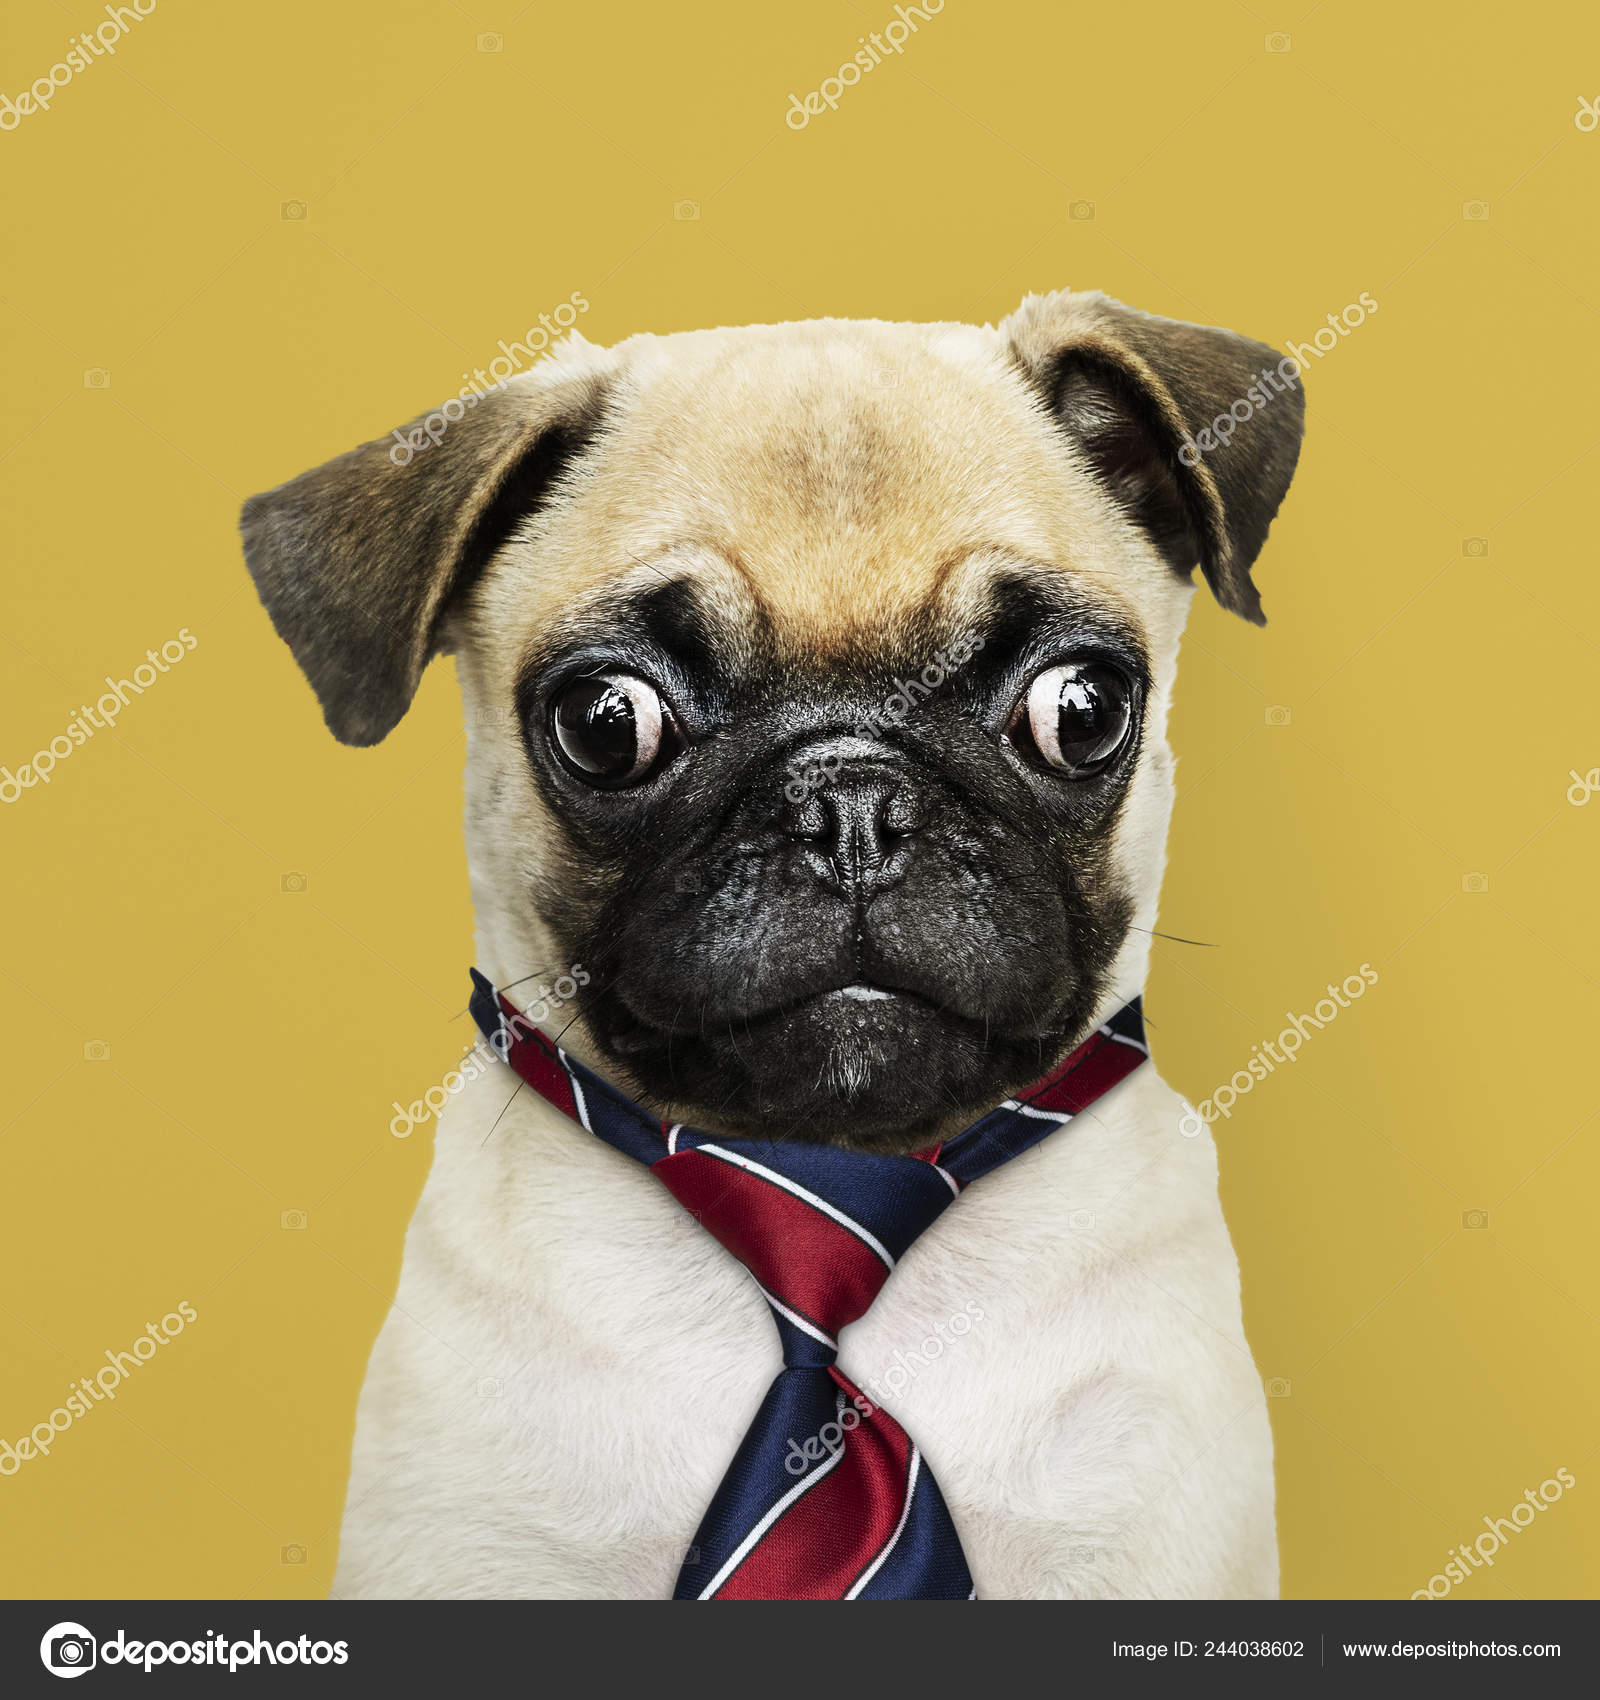 Cute Pug Puppy Red Blue White Striped Necktie Stock Photo C Rawpixel 244038602